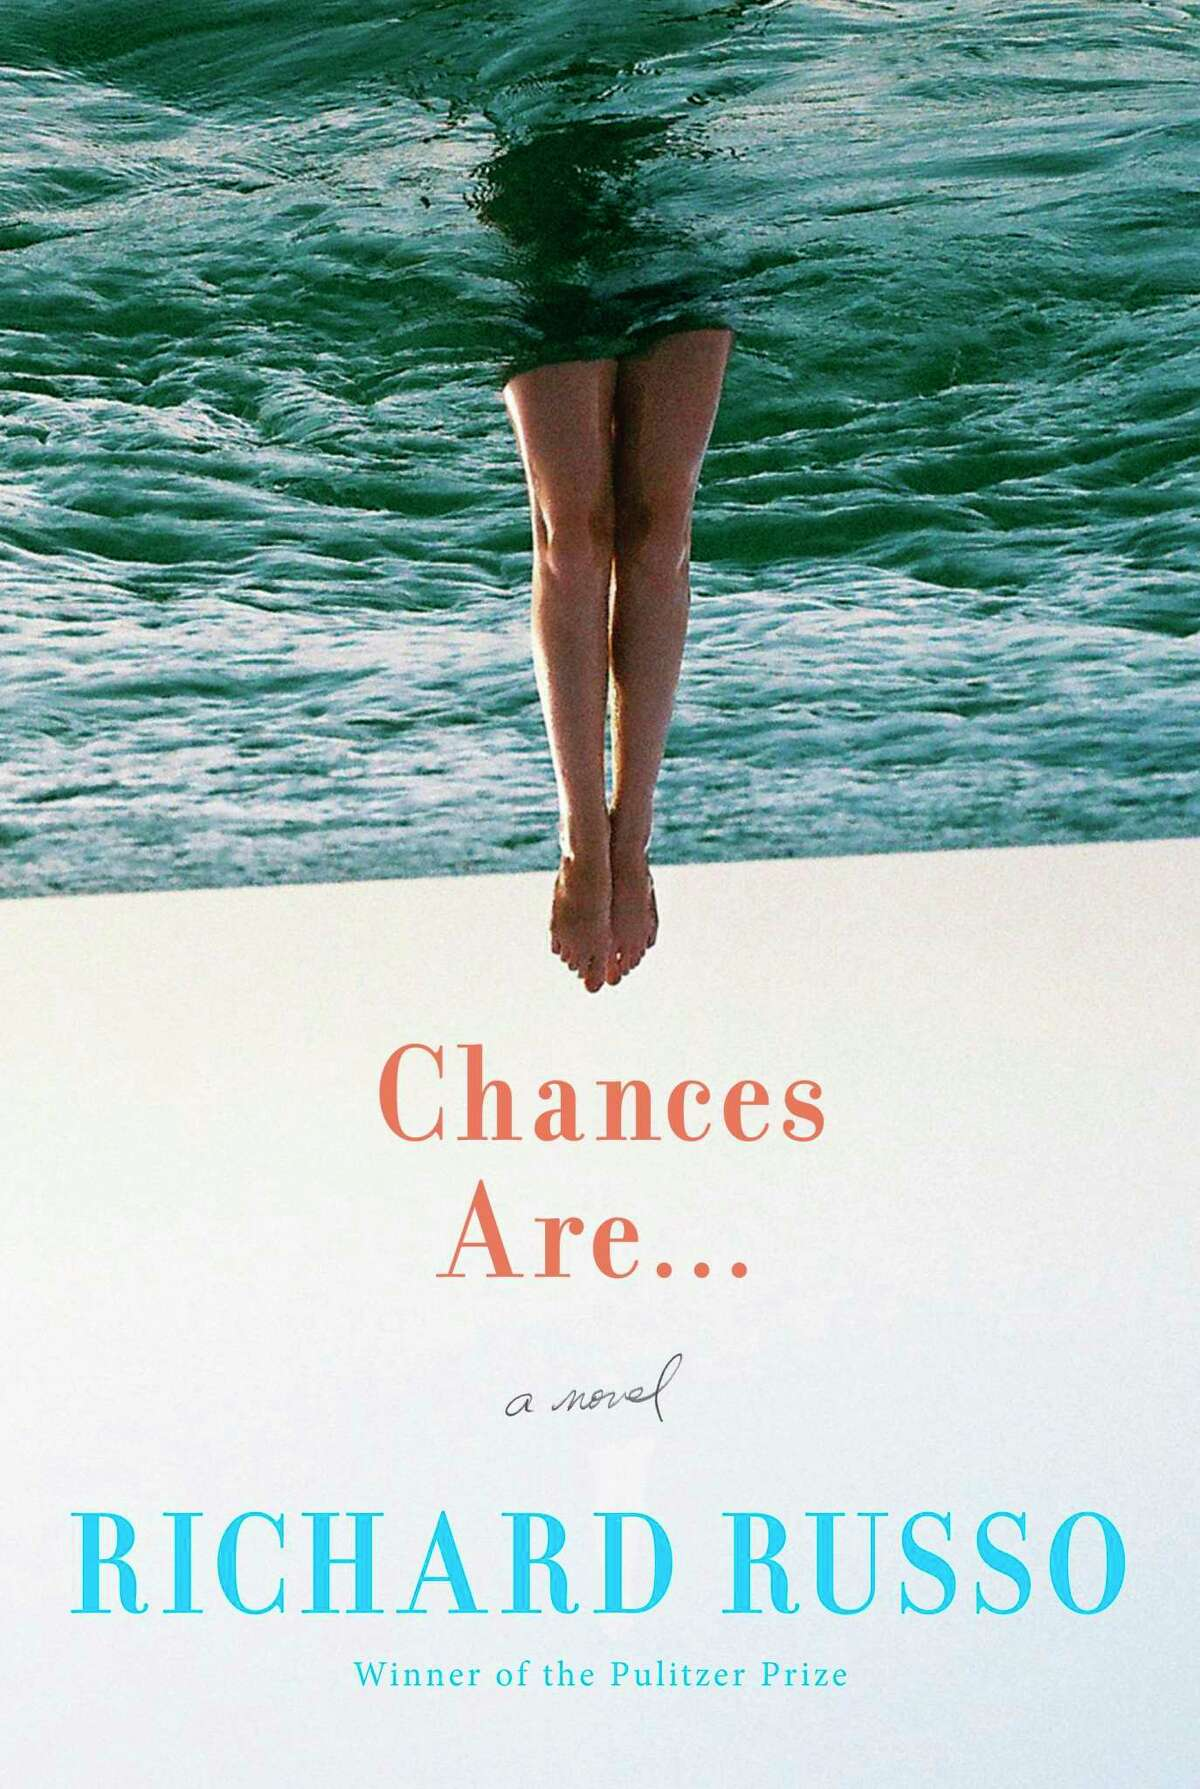 Cover of 'Chances Are...' the 2019 novel by Richard Russo